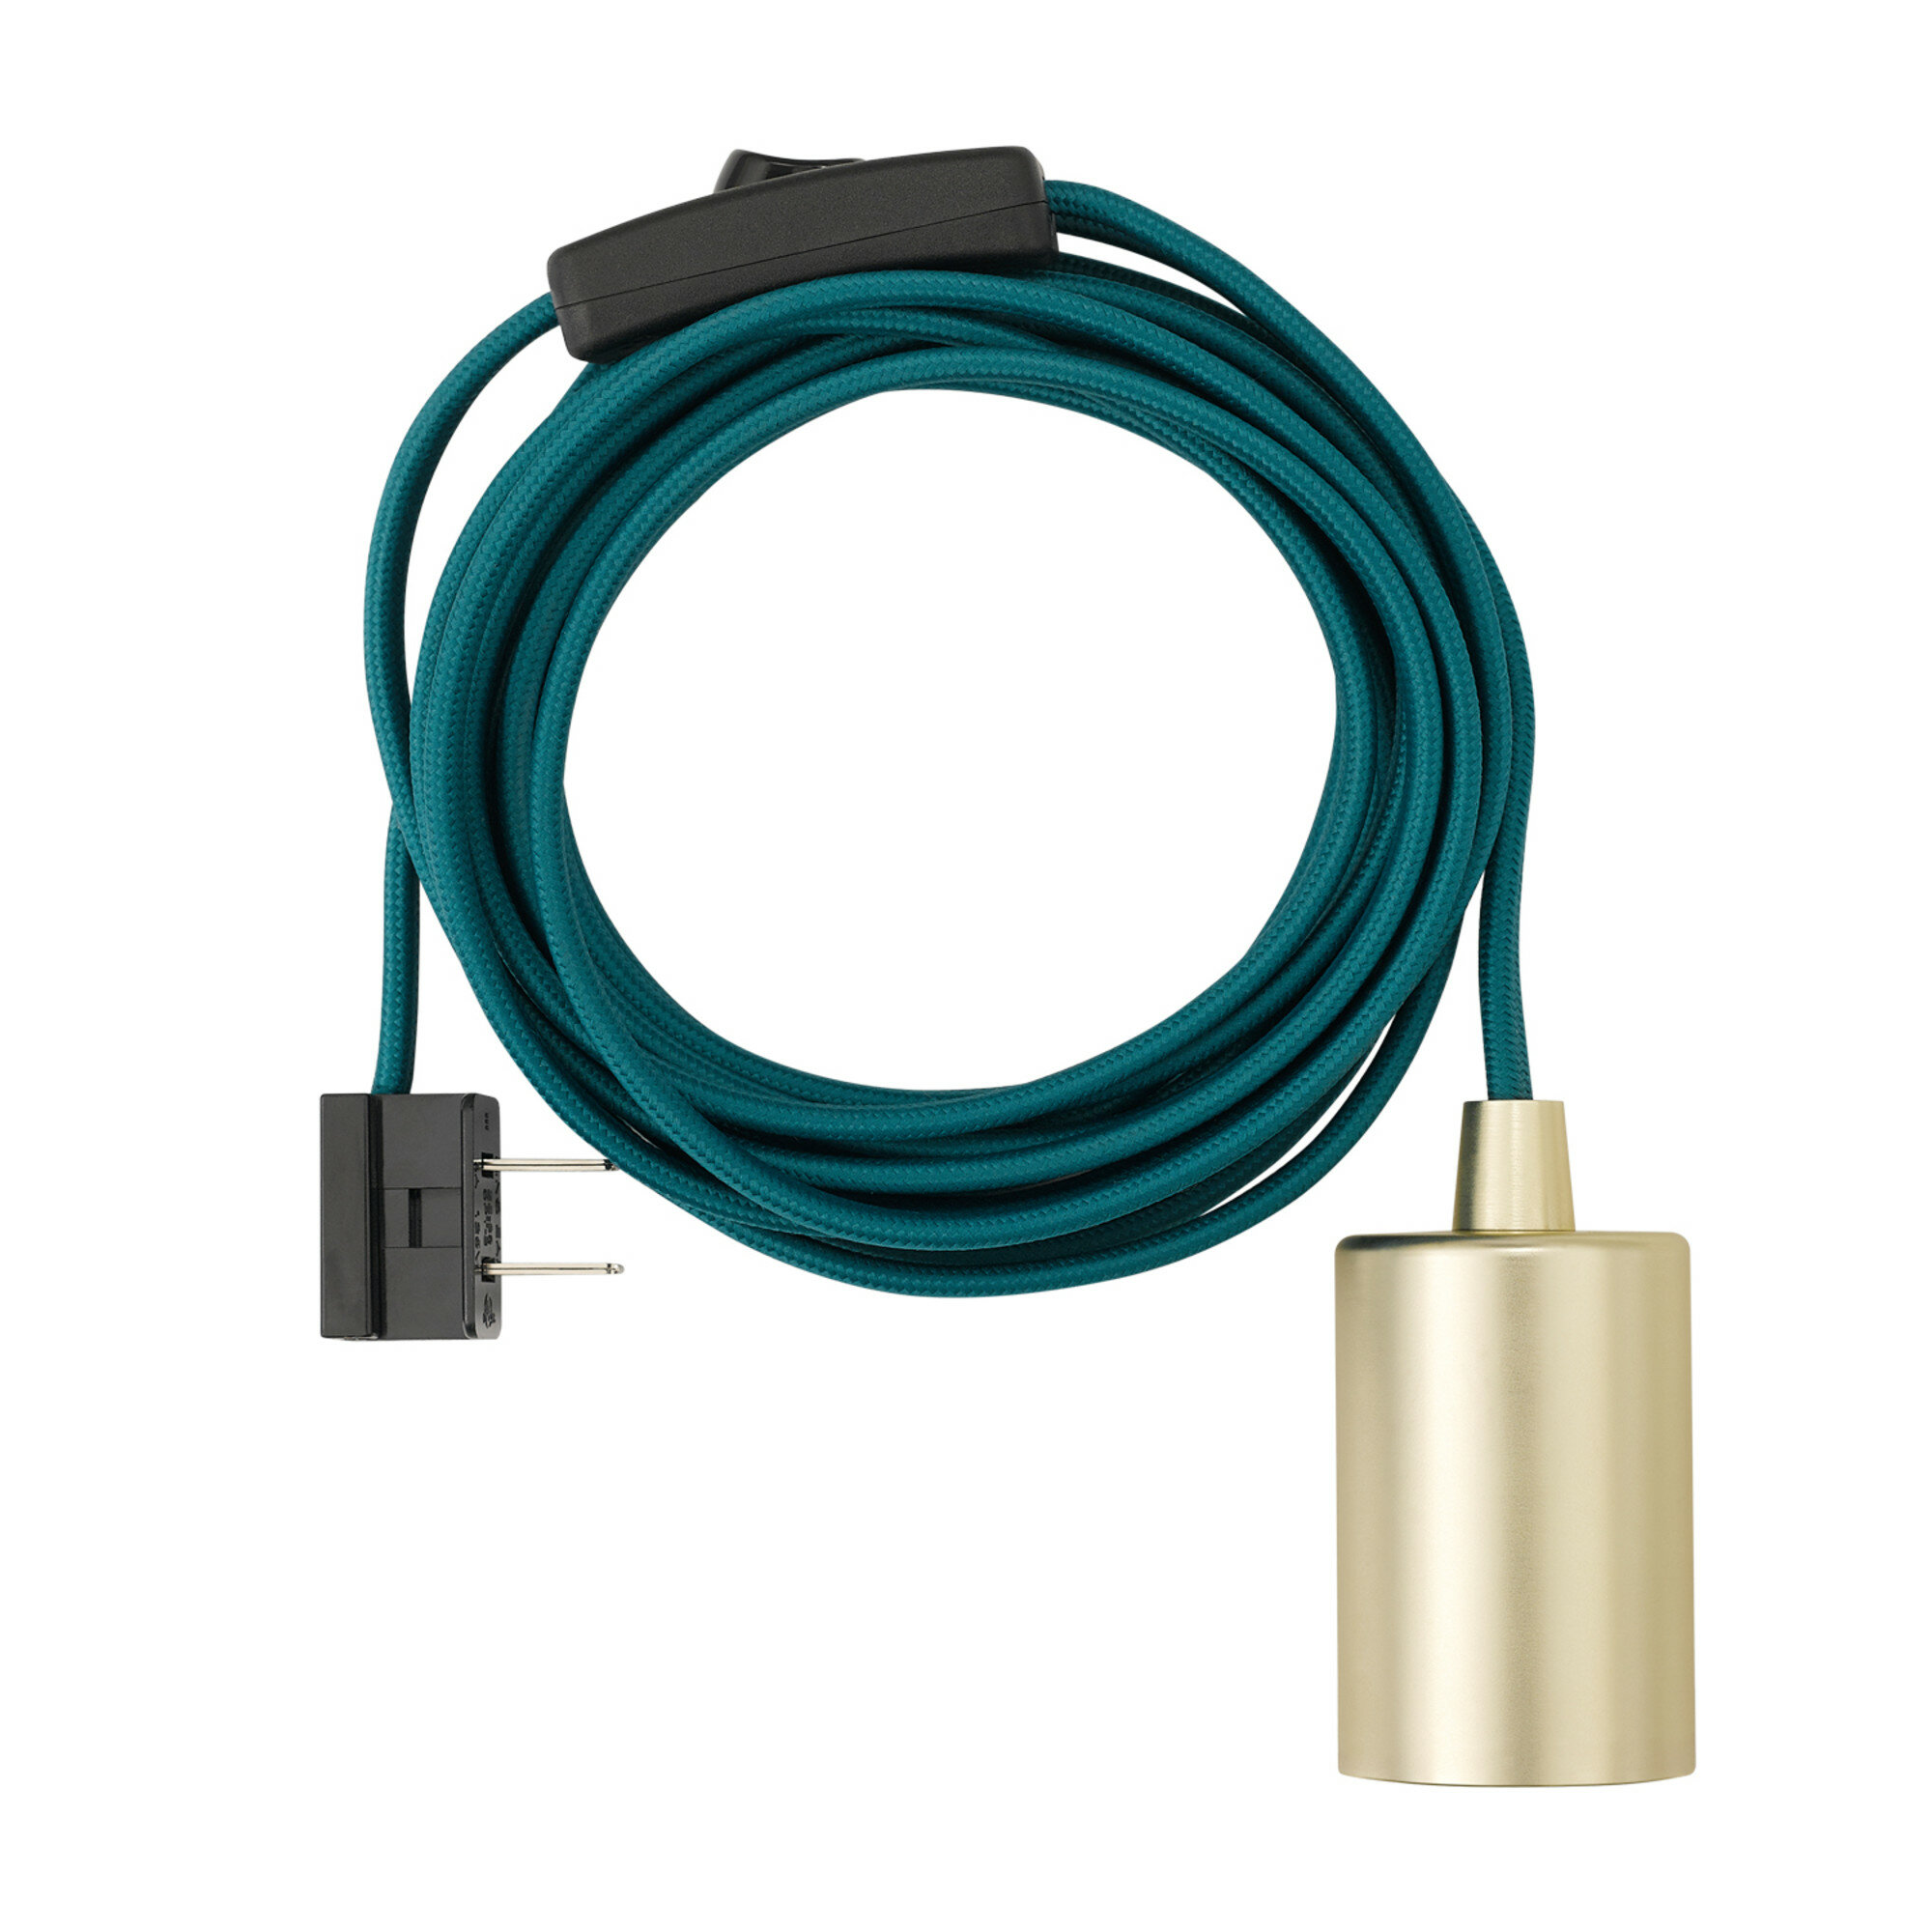 Plug In Pendant Lights Electrical Wiring Light Fixture Stopped Working Free Download Quickview